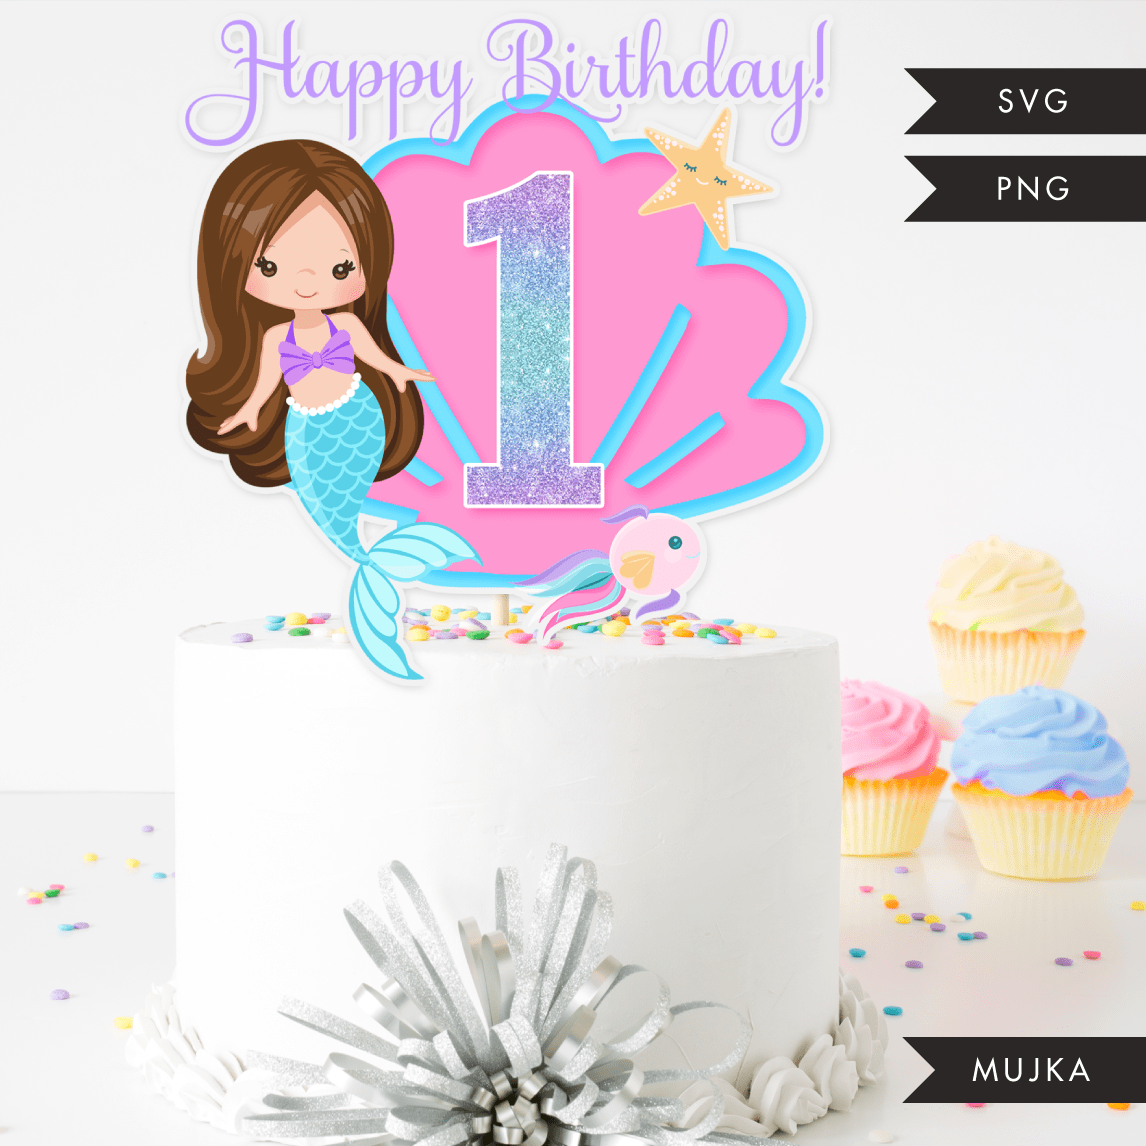 Mermaid Birthday Numbers Cake toppers SVG, PNG cutting files and clipart. Brunette Rainbow mermaid graphics for Cricut, Silhouette